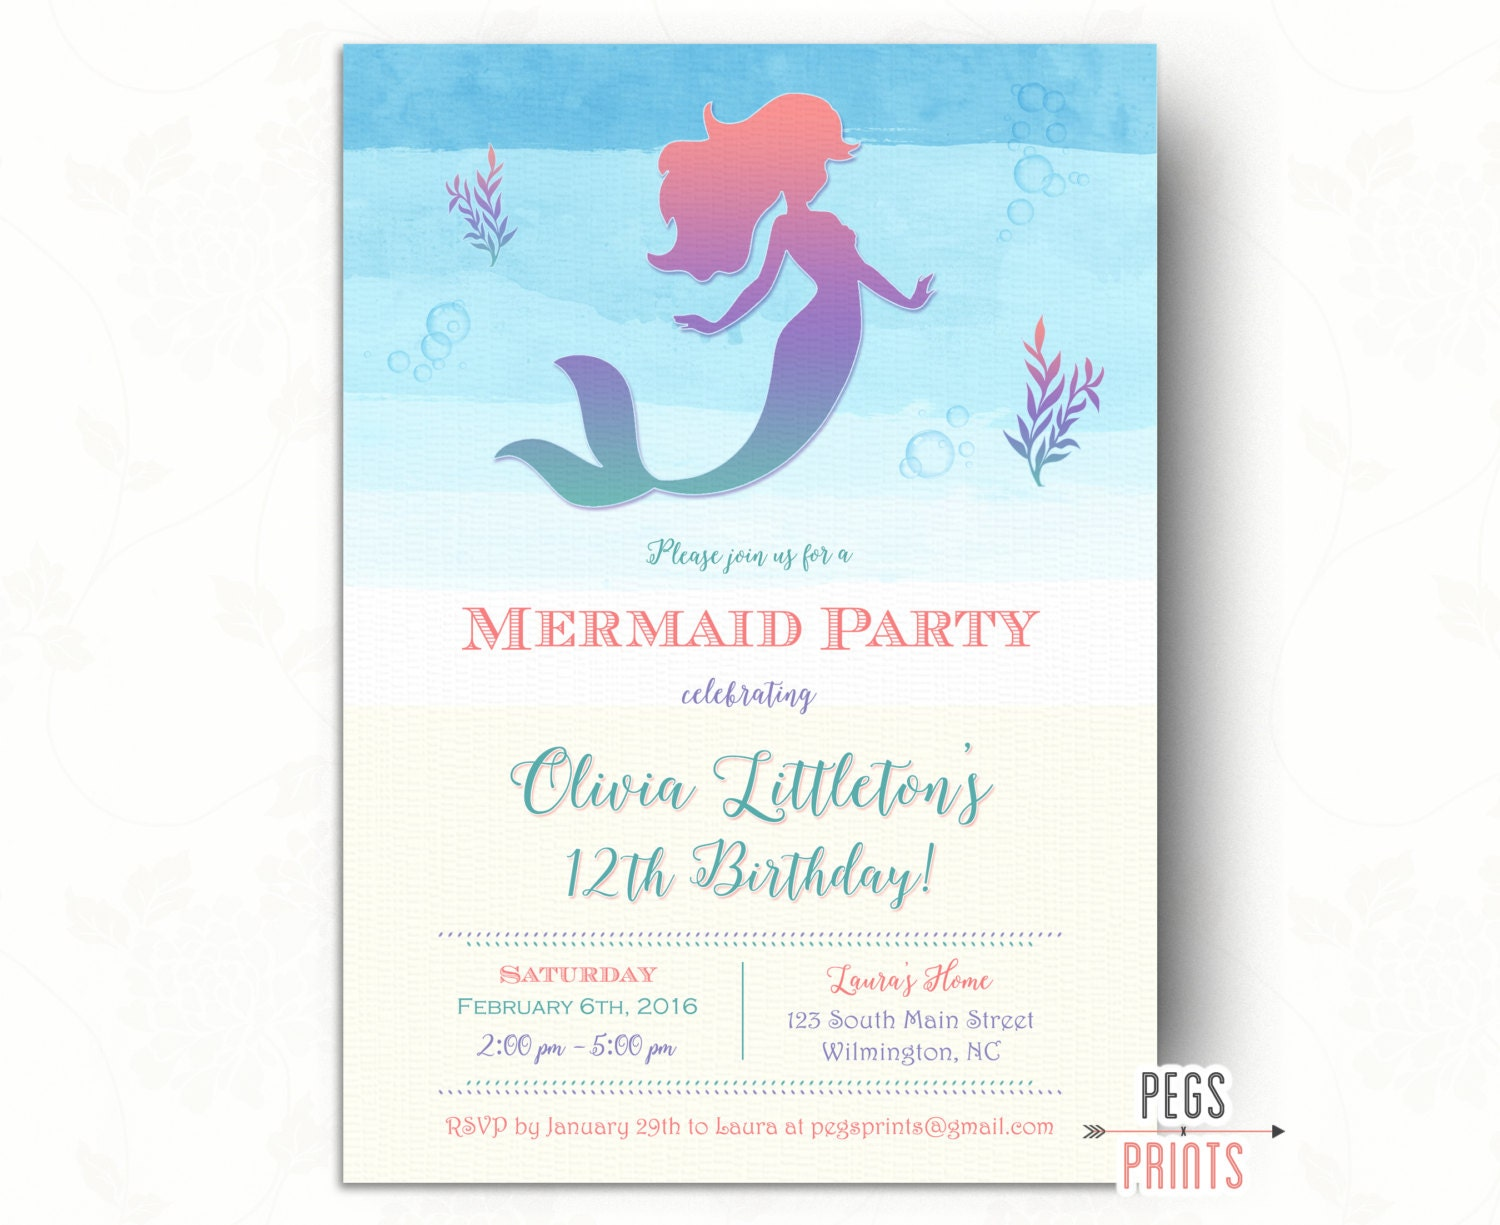 Mermaid Birthday Invitation Under The Sea Birthday. Keller Graduate School Of Management Login. Free Email Template For Gmail. Hip Hop Competition. Family Reunion Invitation Templates Free. Free Sharepoint 2013 Template. Instagram Frame Template. Fascinating Project Manager Resume Samples. Paw Patrol Birthday Invitations Free